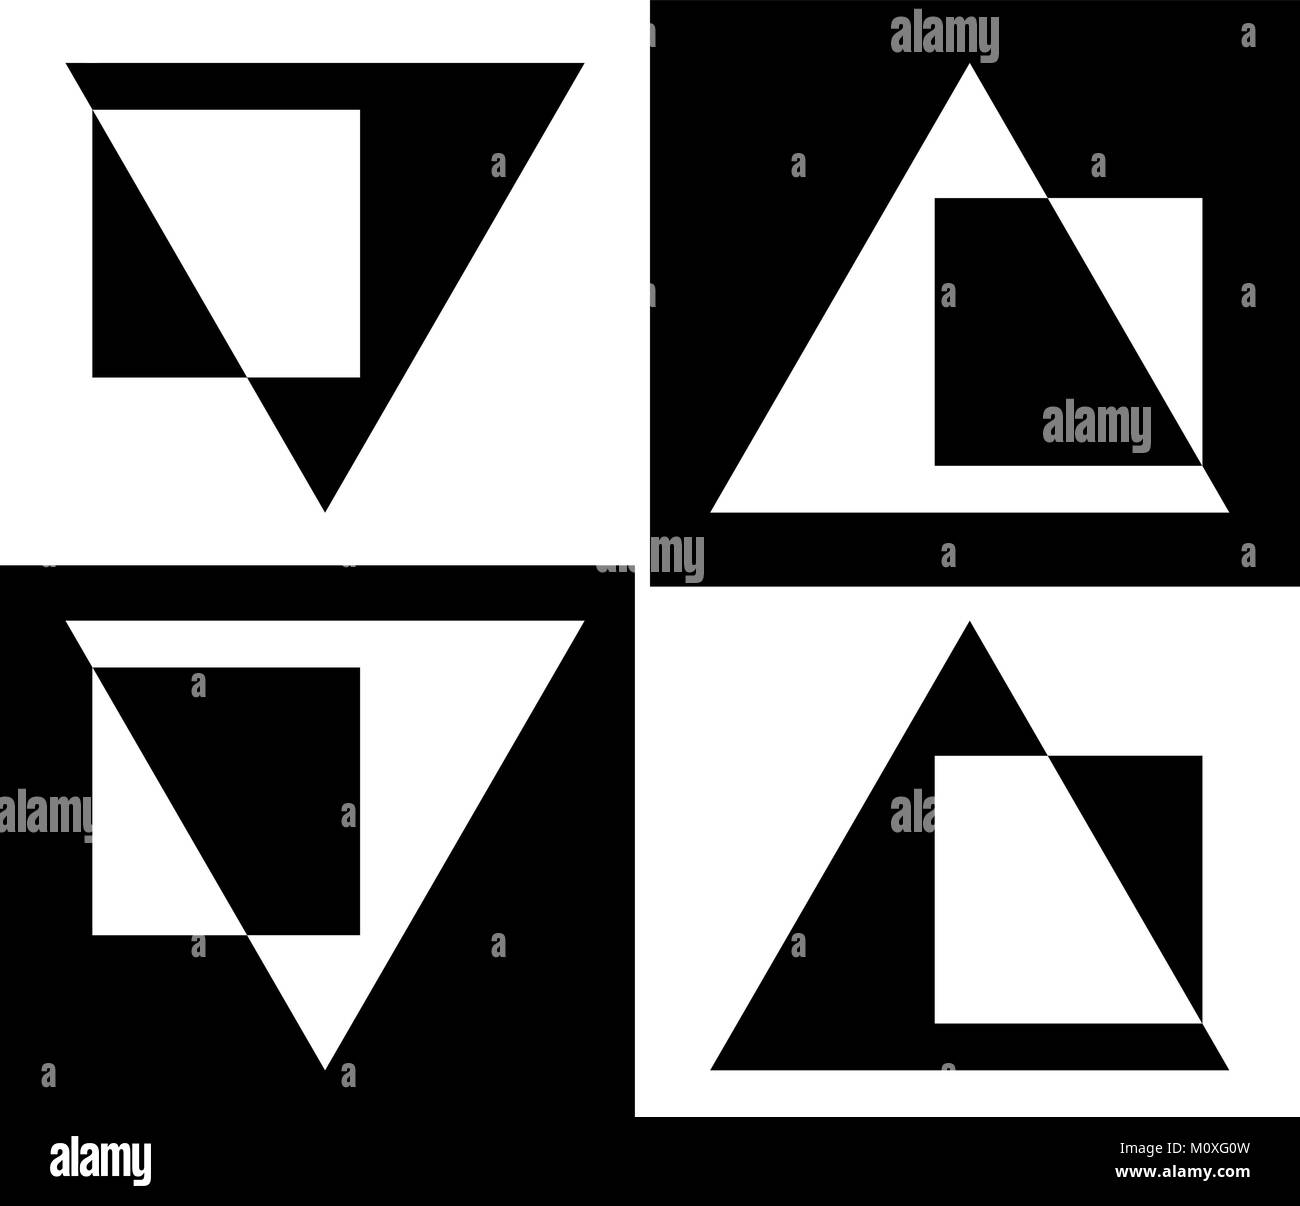 abstraction from triangles and squares design business logo - Stock Vector